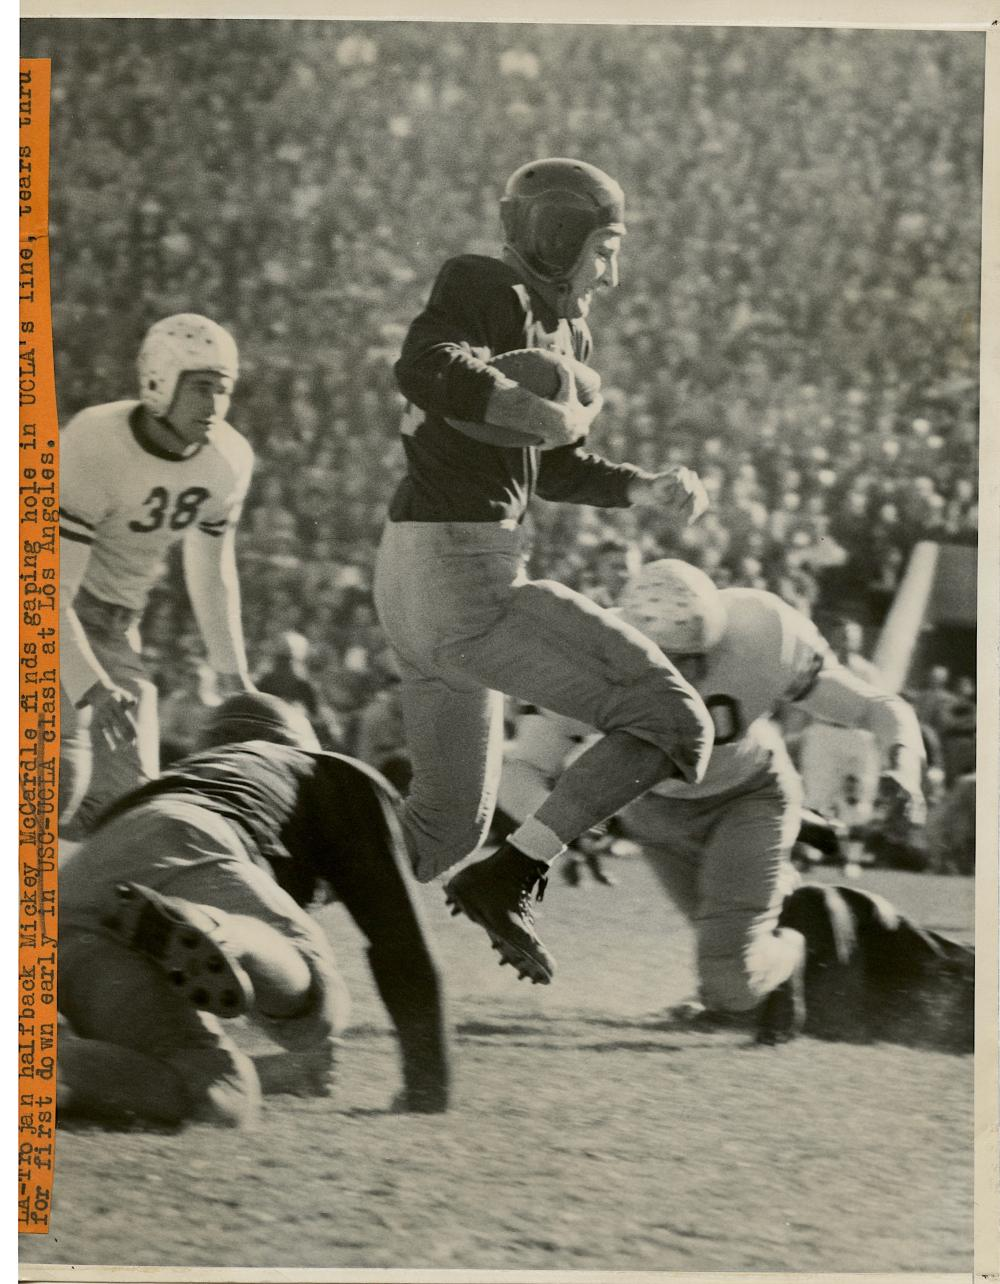 Historical Photo Football USC vs UCLA 1942